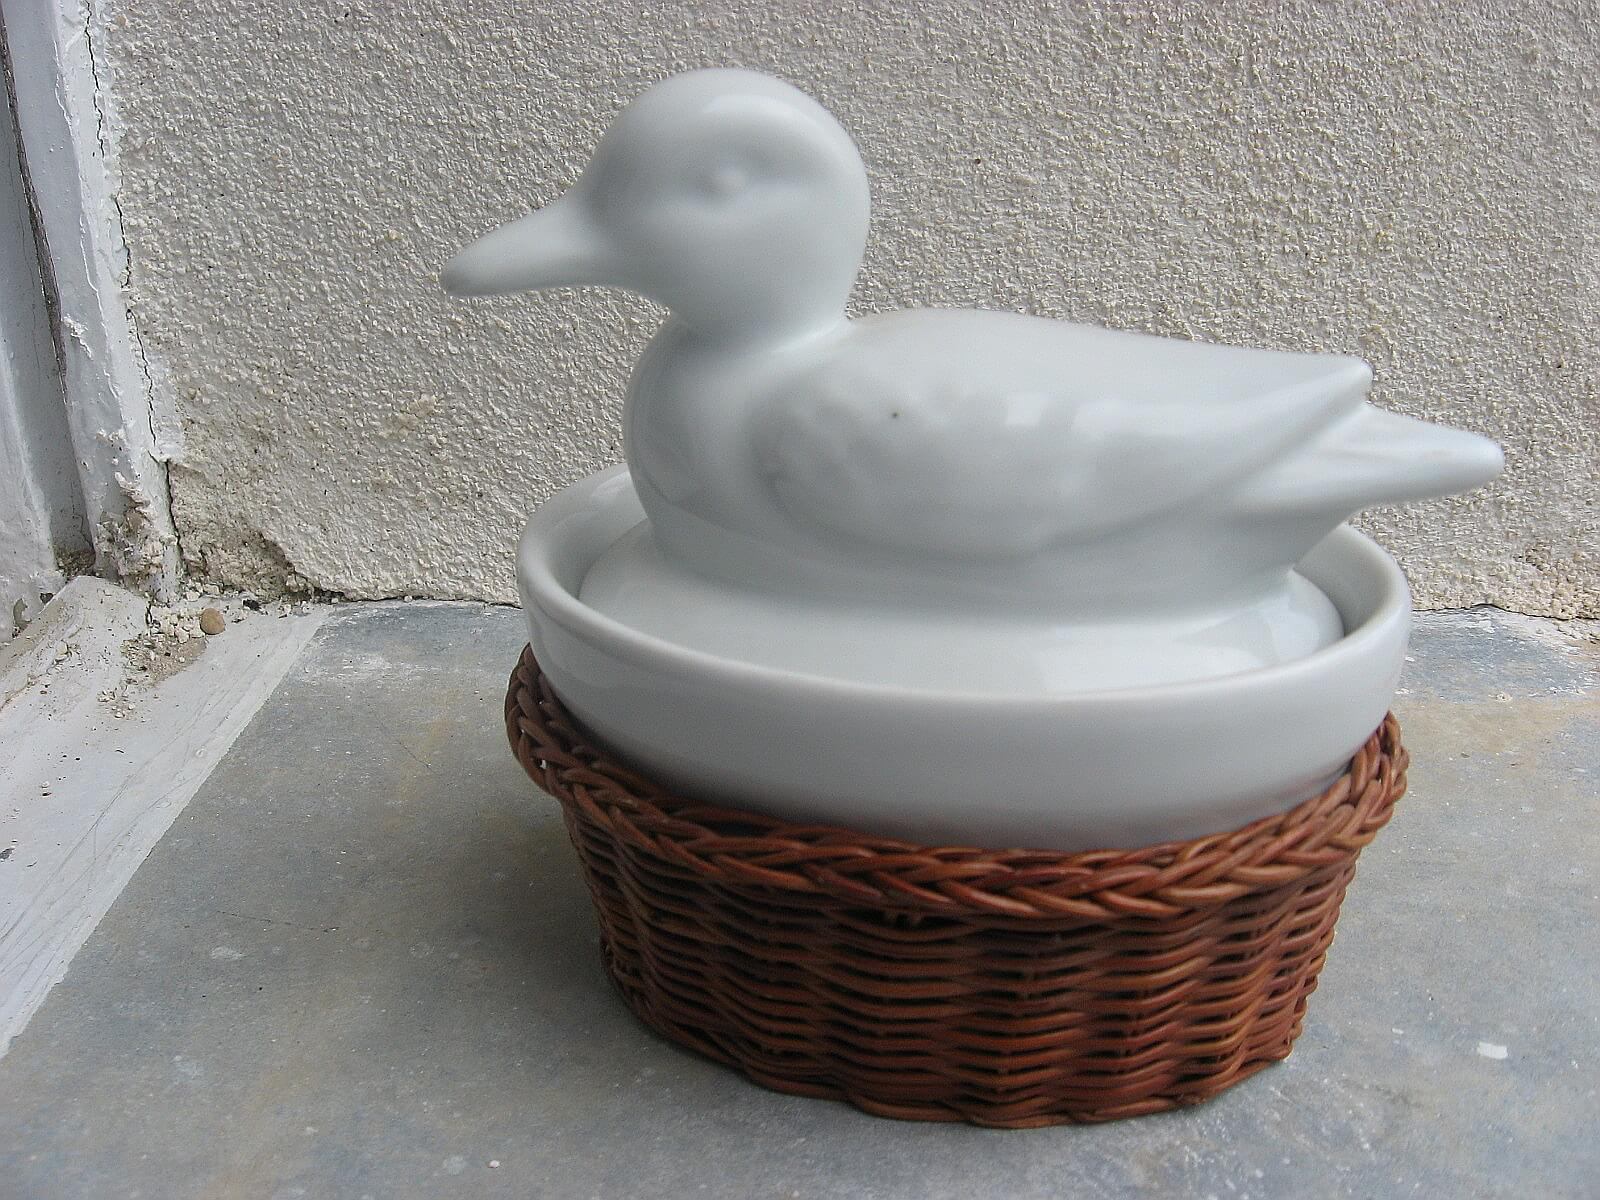 White porcelain duck mini casserole dish in basked_A_PumpjackPiddlewick